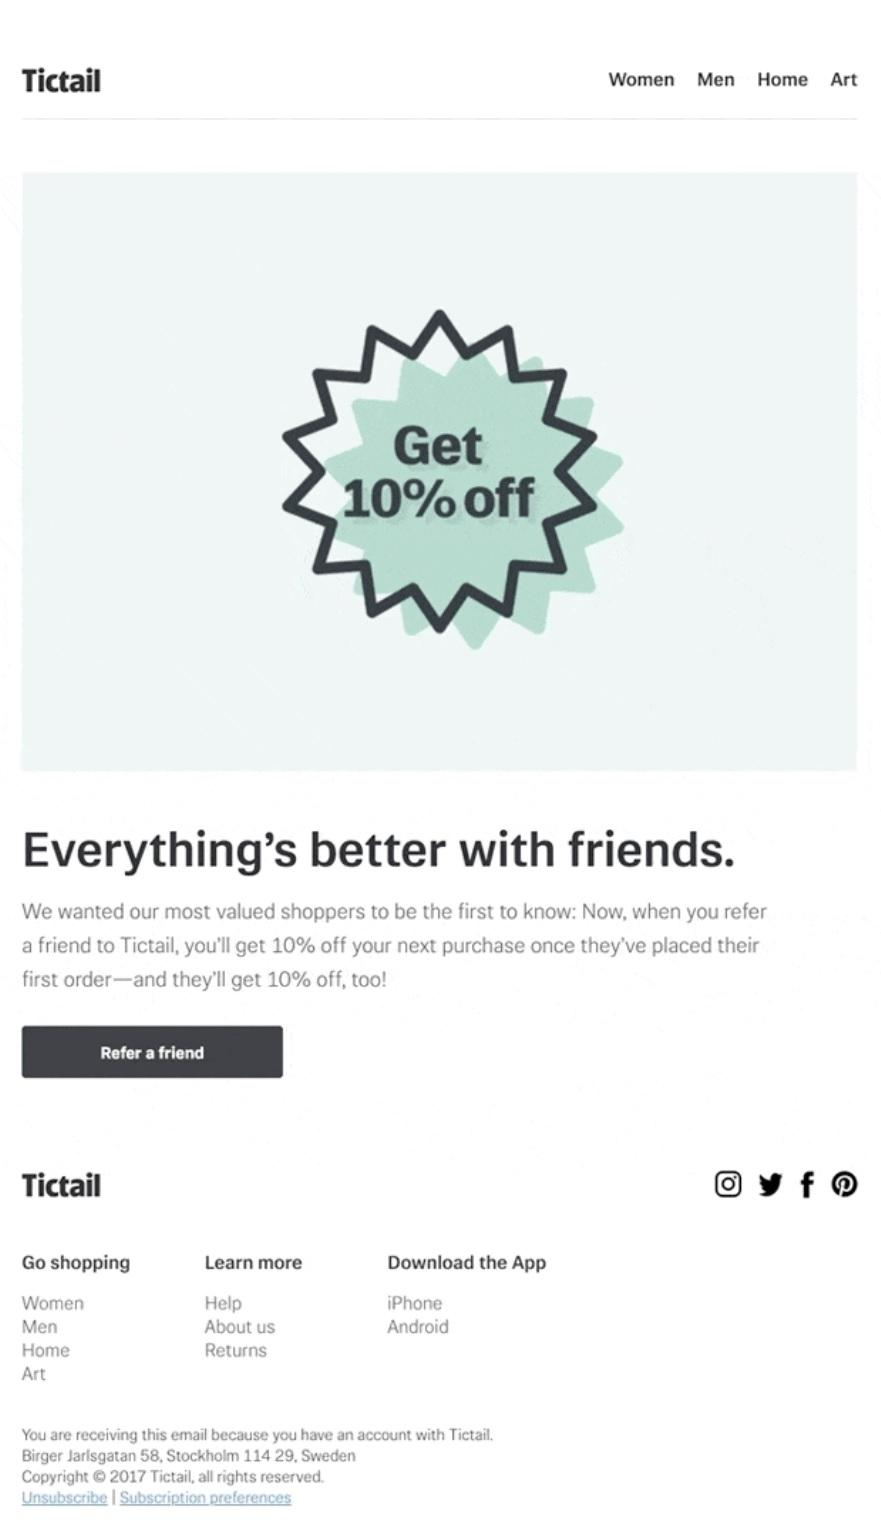 when a consumer gets an exclusive email from a favorite brand to help spread awareness, they're more likely to forward it to a friend, especially if it has an enticing incentive attached.